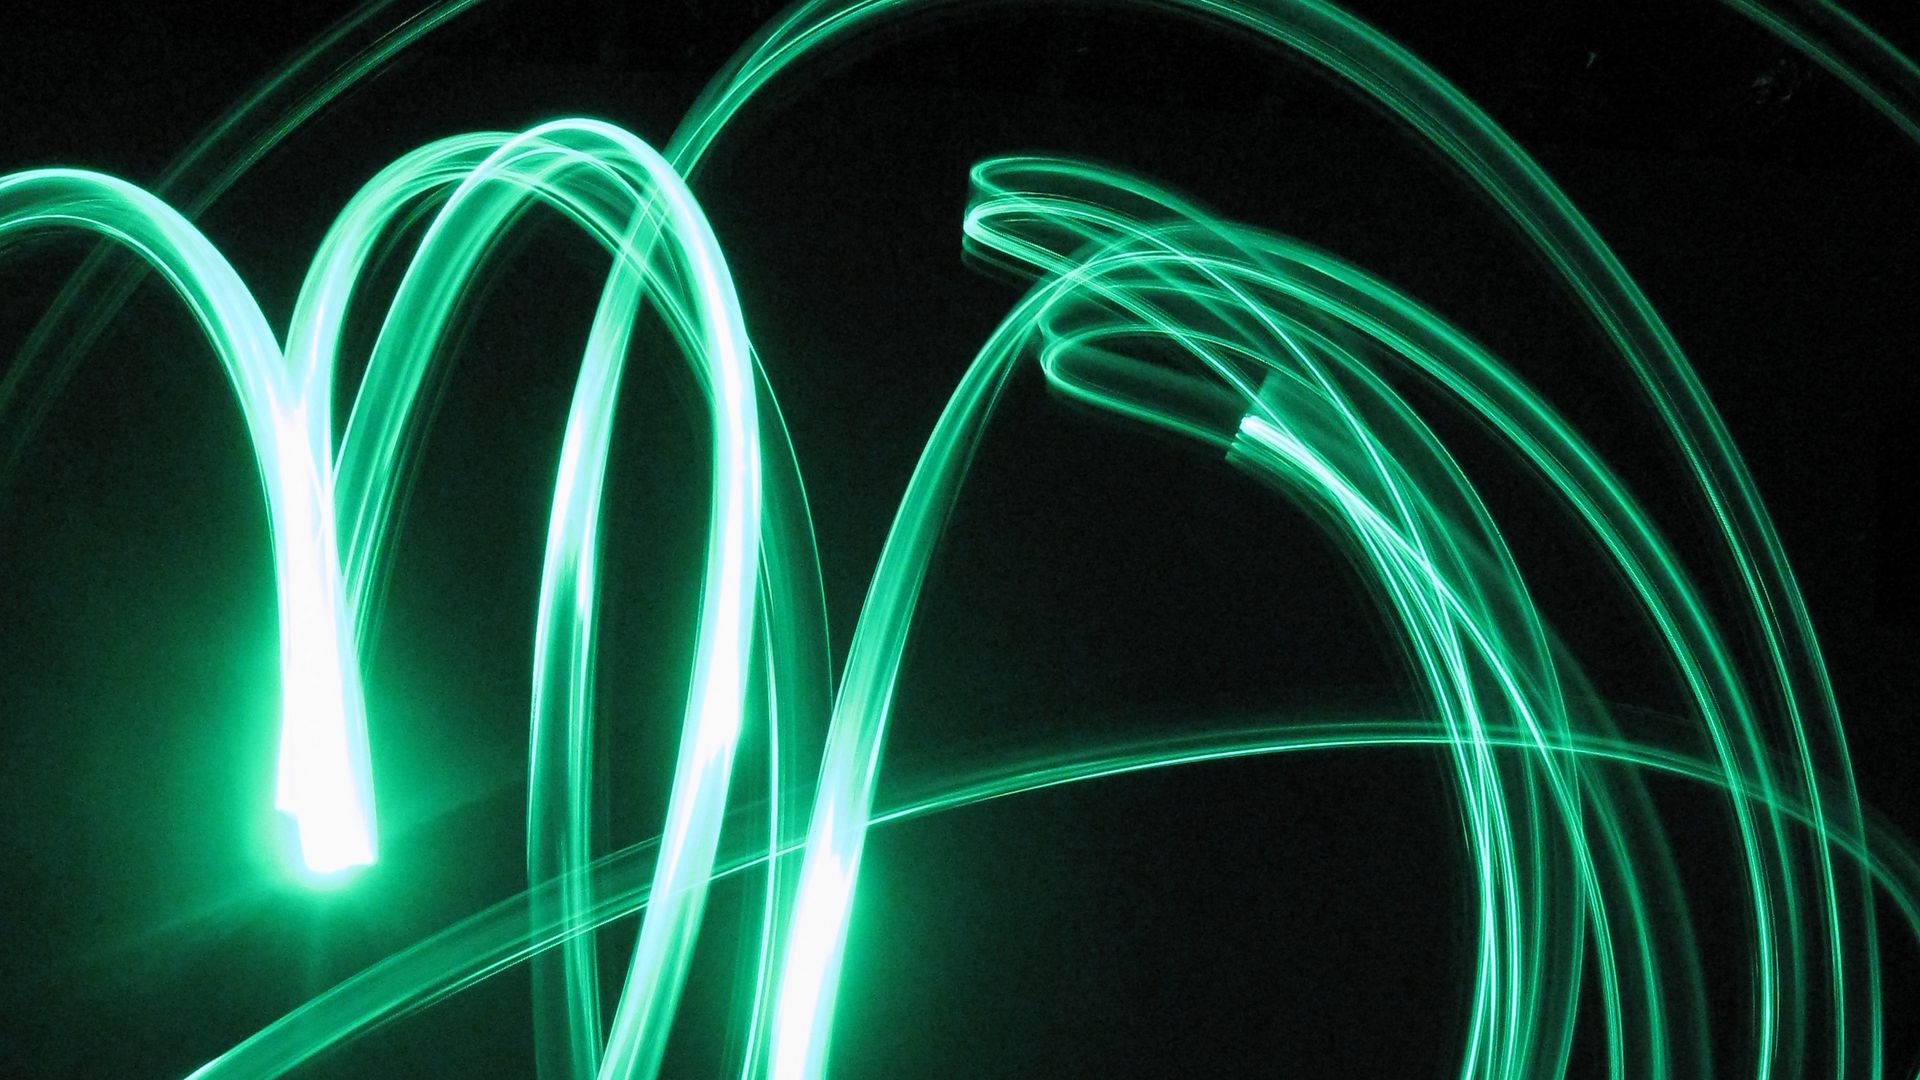 Neon green wallpaper is a wonderful Picture design